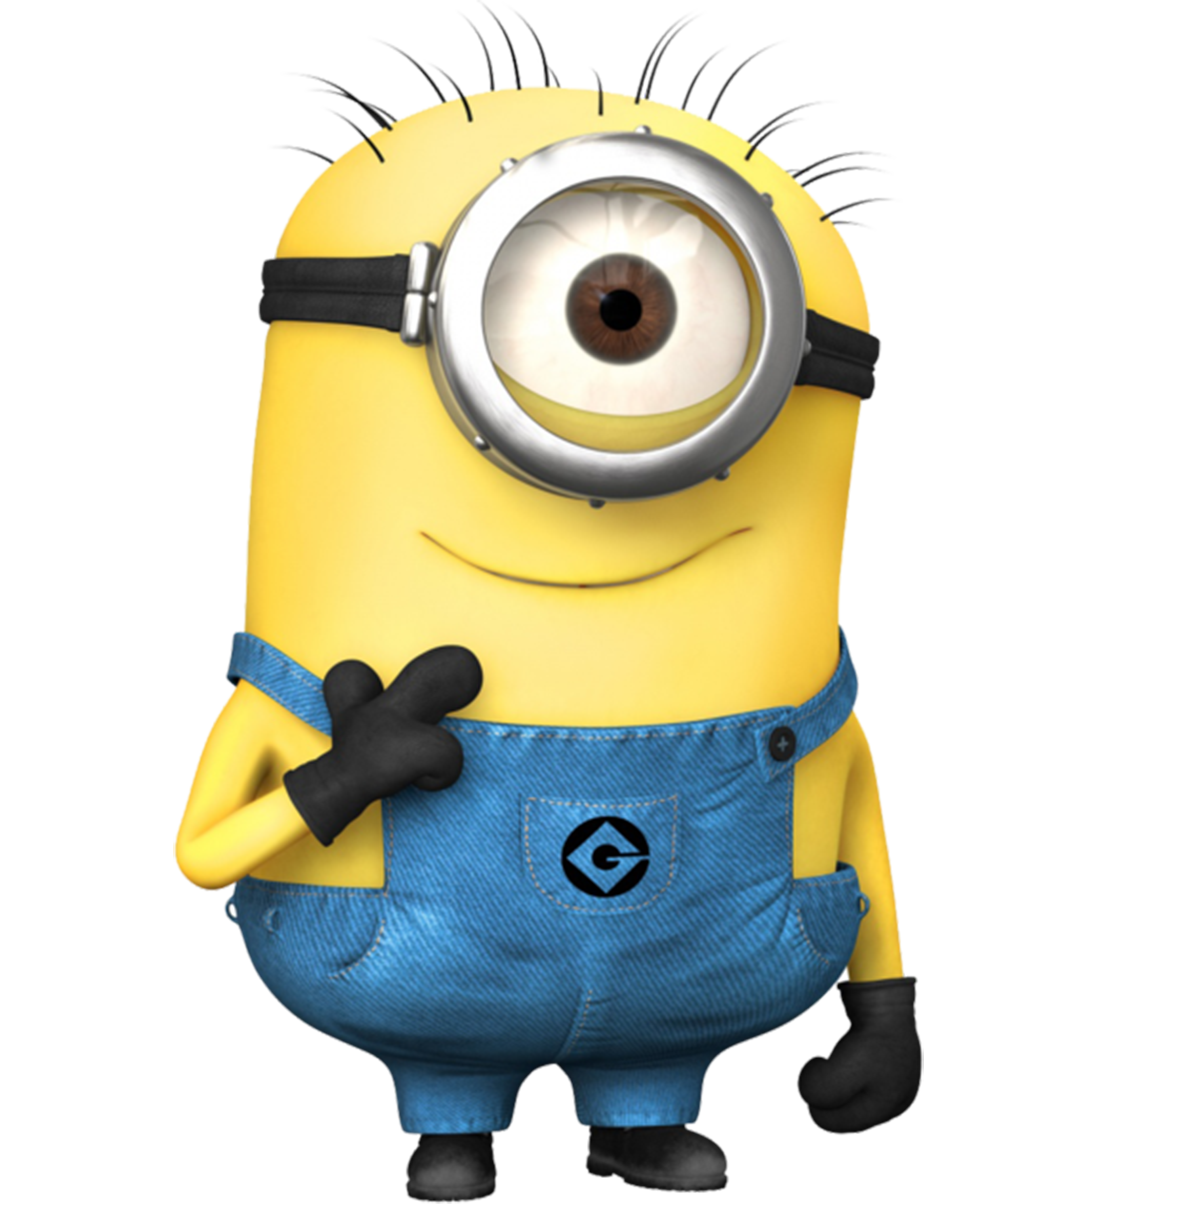 Png images free download. Minions clipart eye